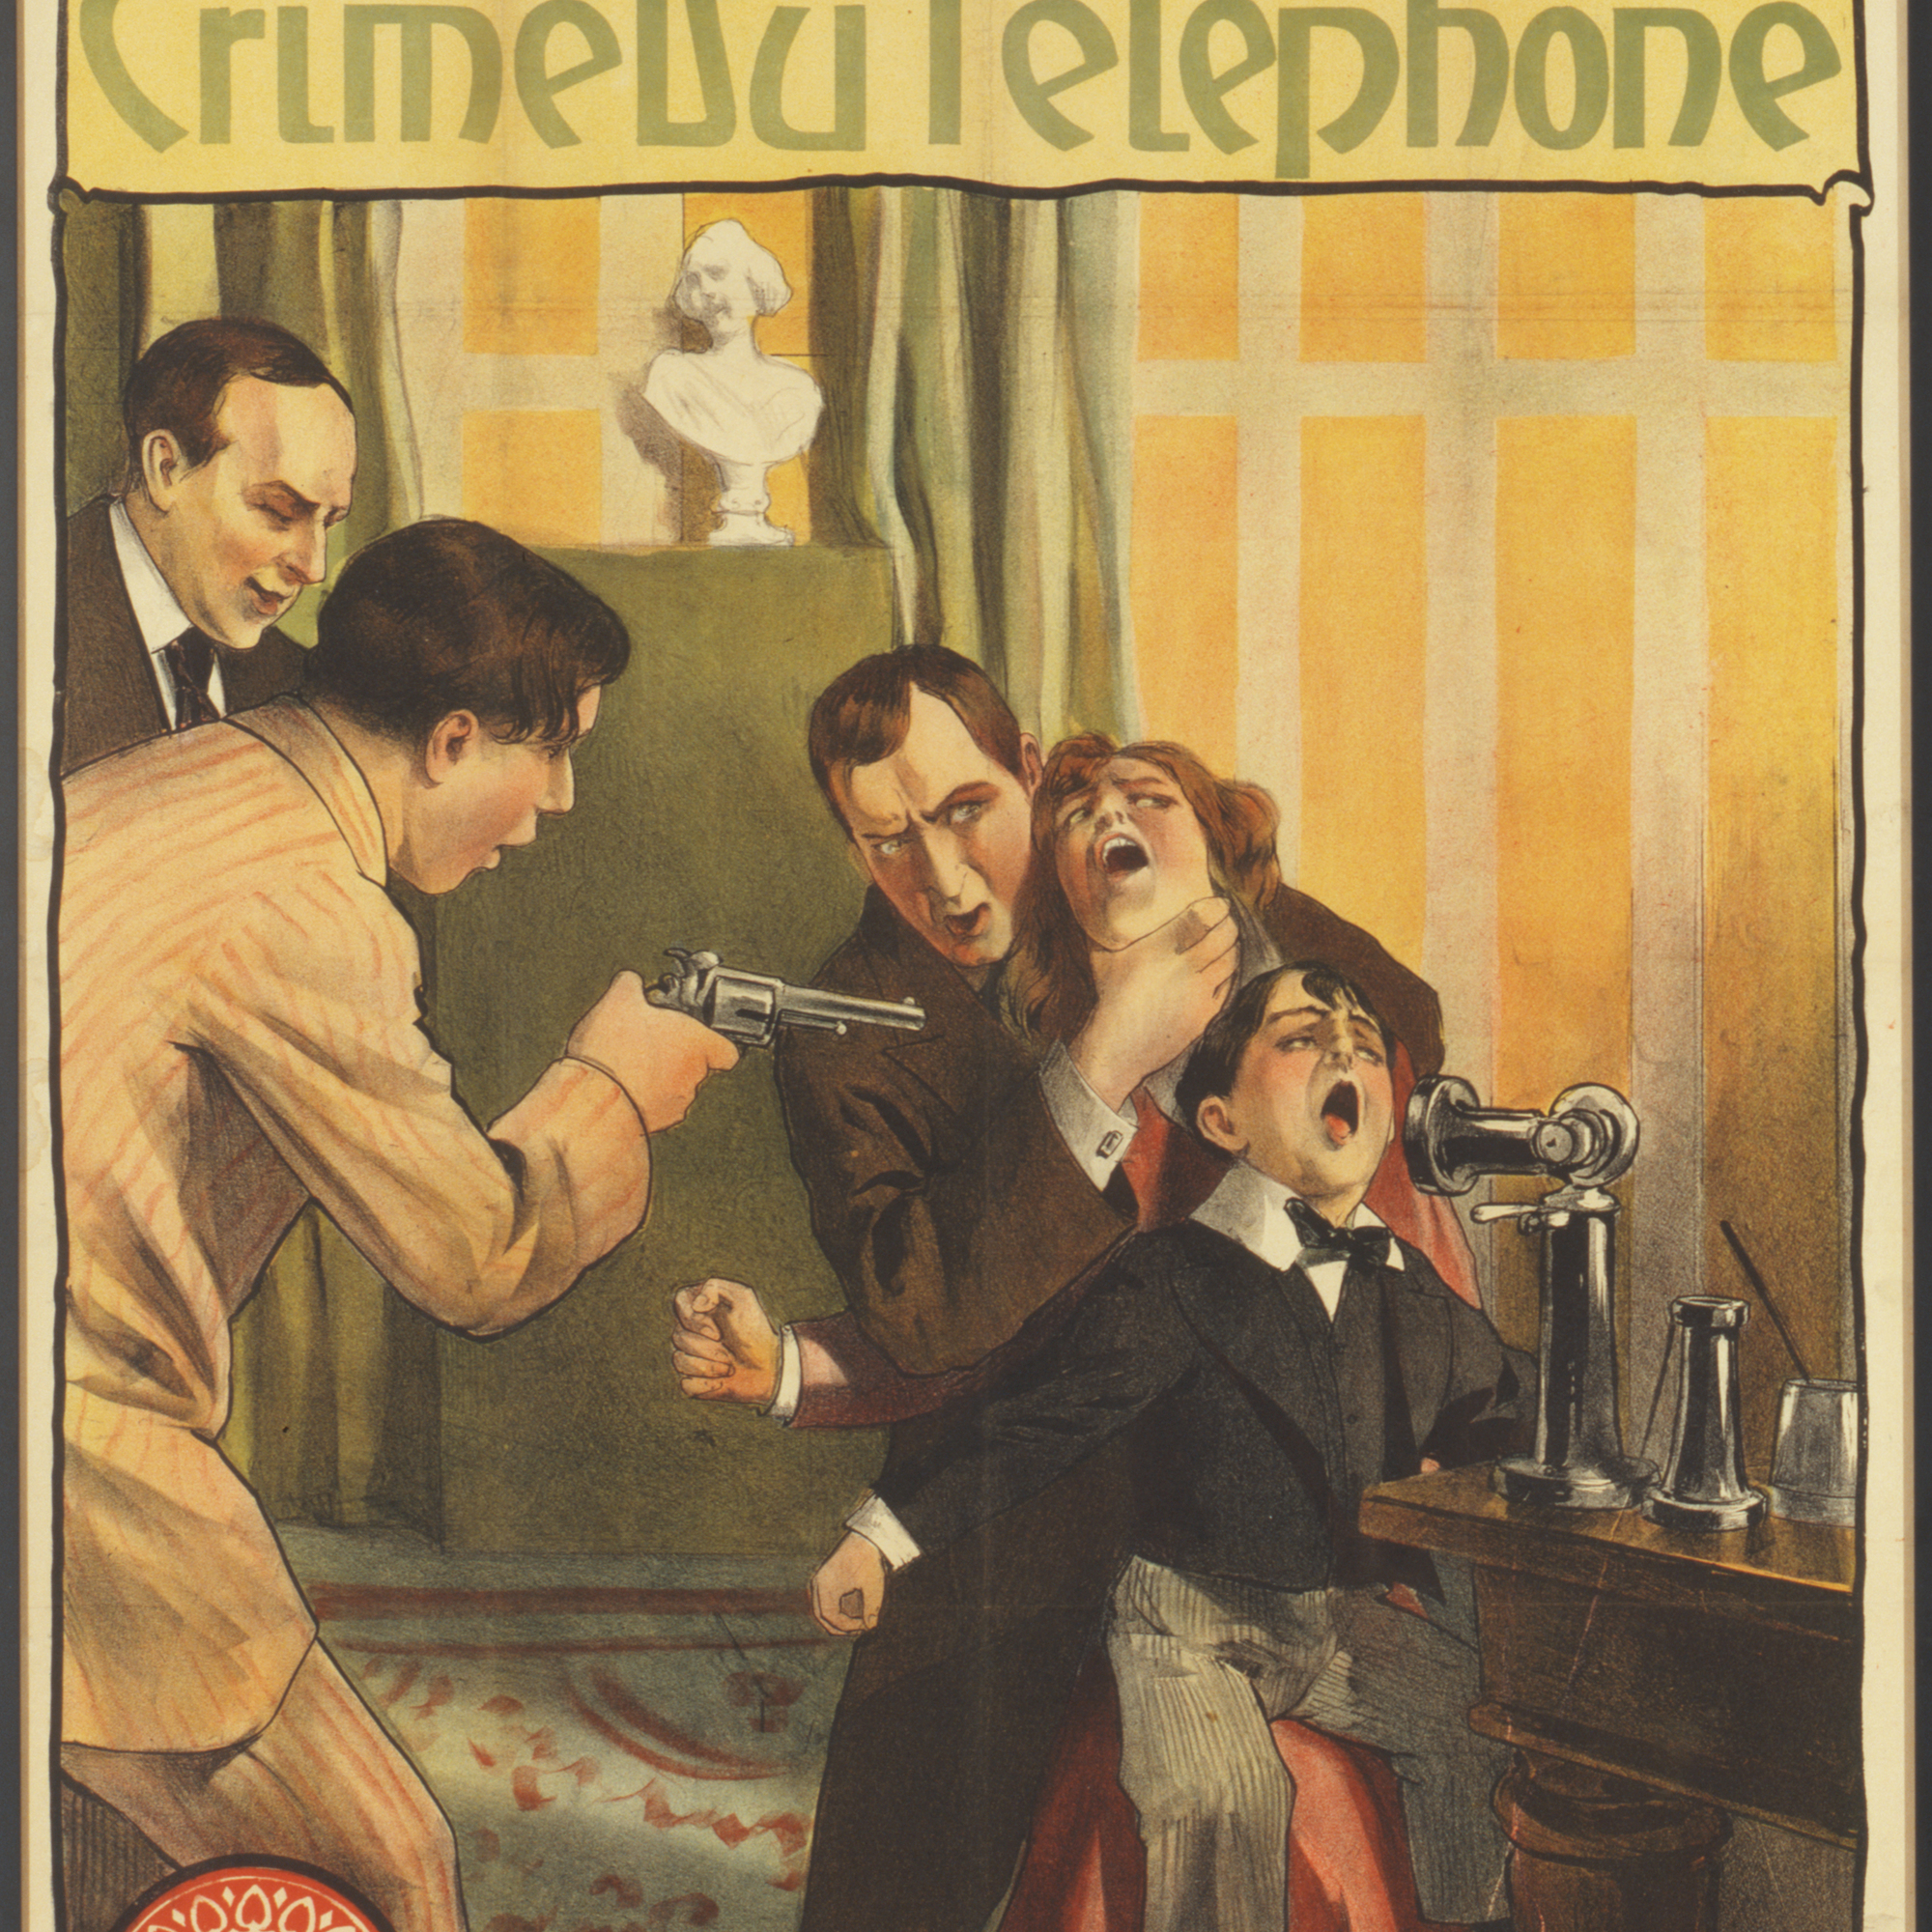 Poster for Bout-de-Zan et le crime au telephone (1914, France, Gaumont, Directed by Louis Feuillade). Lithograph, 40 × 30″ (101.6 × 76.2 cm). Department of Film Collection